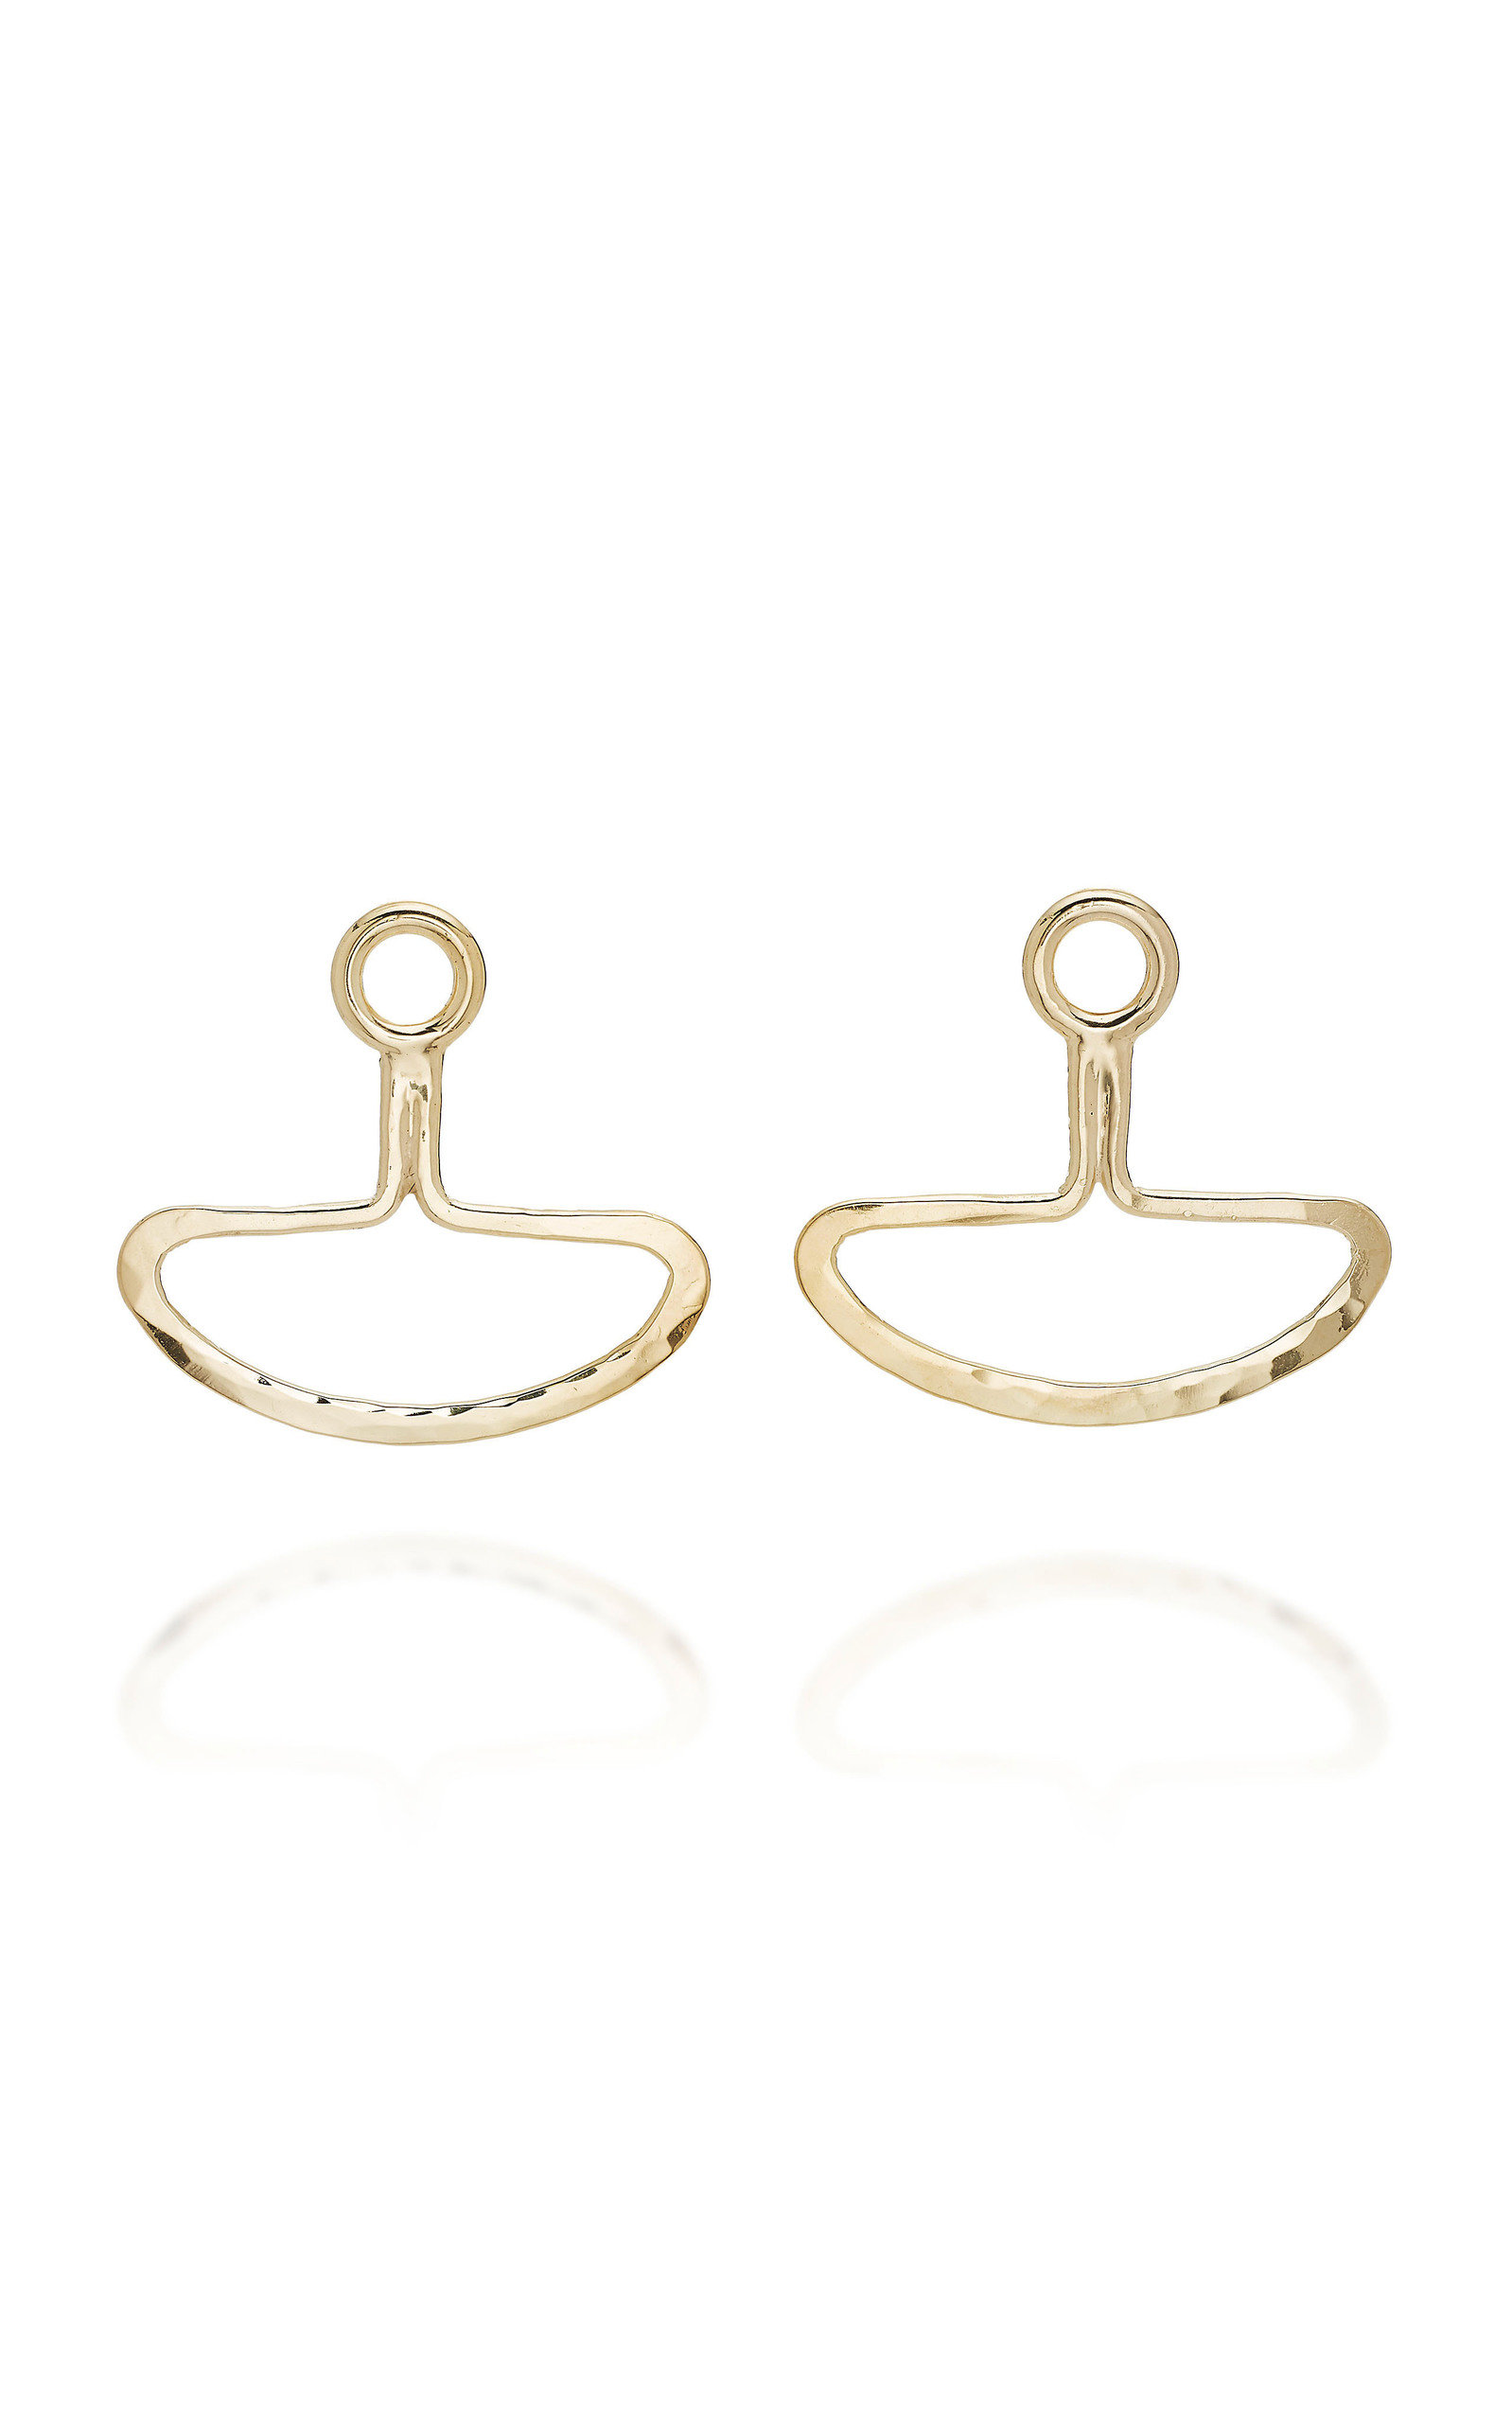 Aracano_Aros_Gold_Arc_Earrings_Moda_Operando.jpg